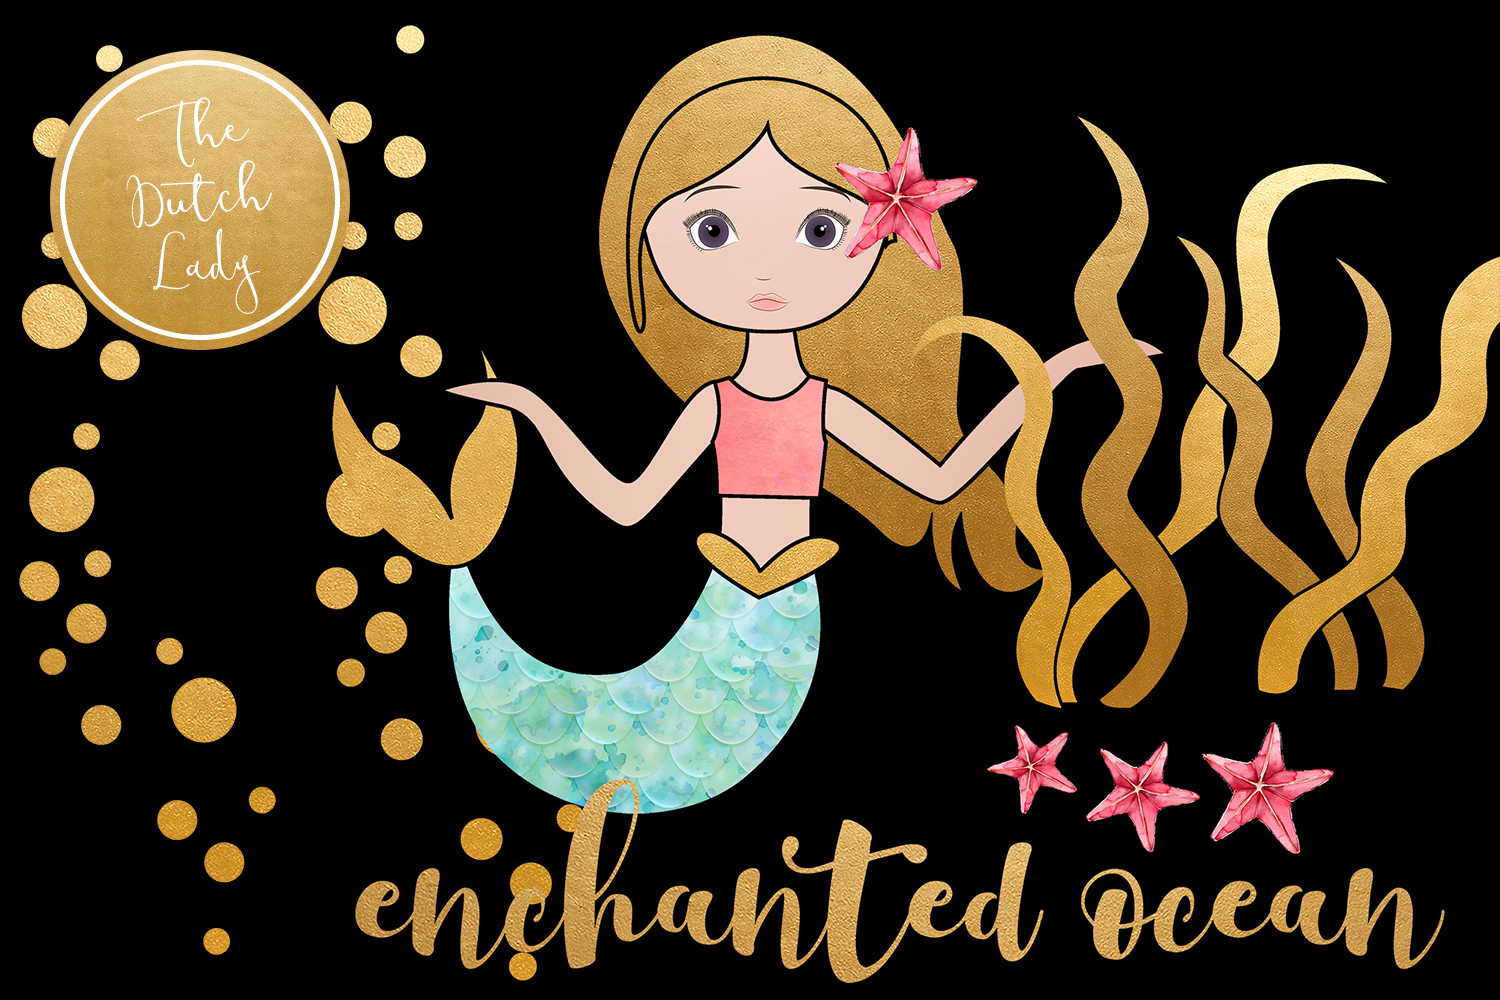 Enchanted Mermaid Ocean Clipart Set example image 2